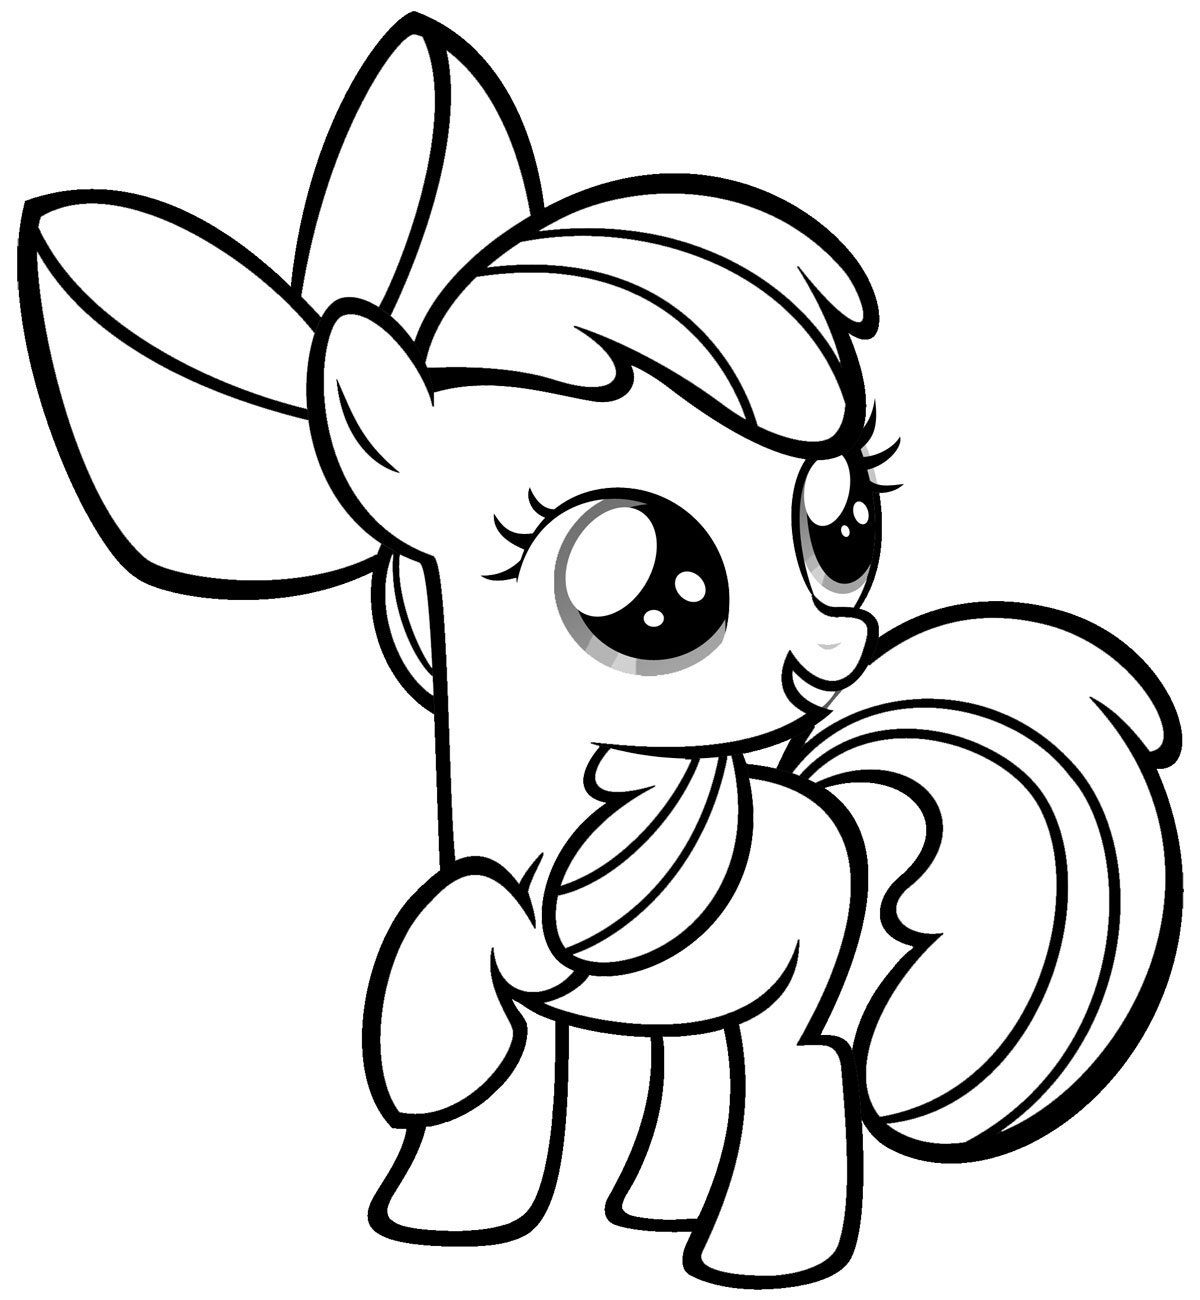 coloring pages for girls my little pony my little pony rarity coloring pages team colors coloring pages little pony my girls for